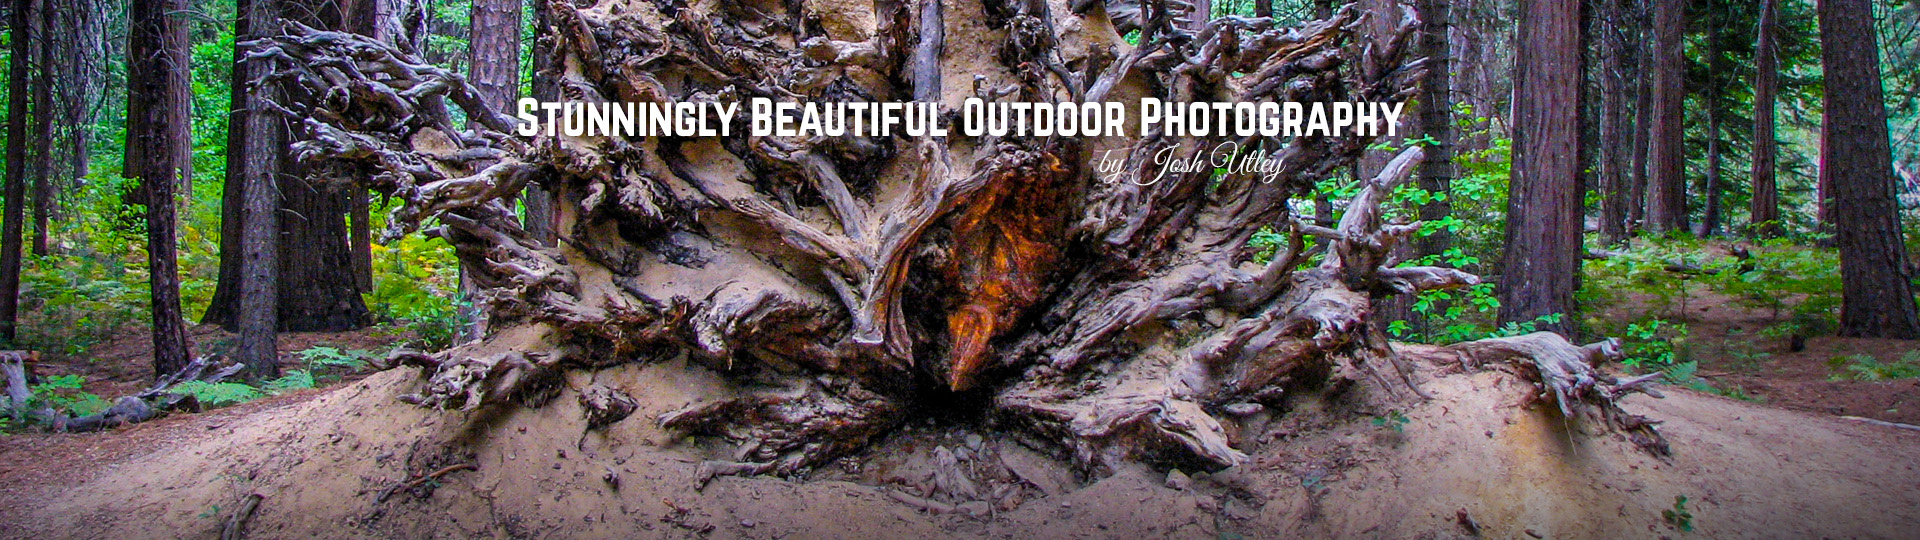 Stunningly Beautiful Outdoor Photography by Josh Utley